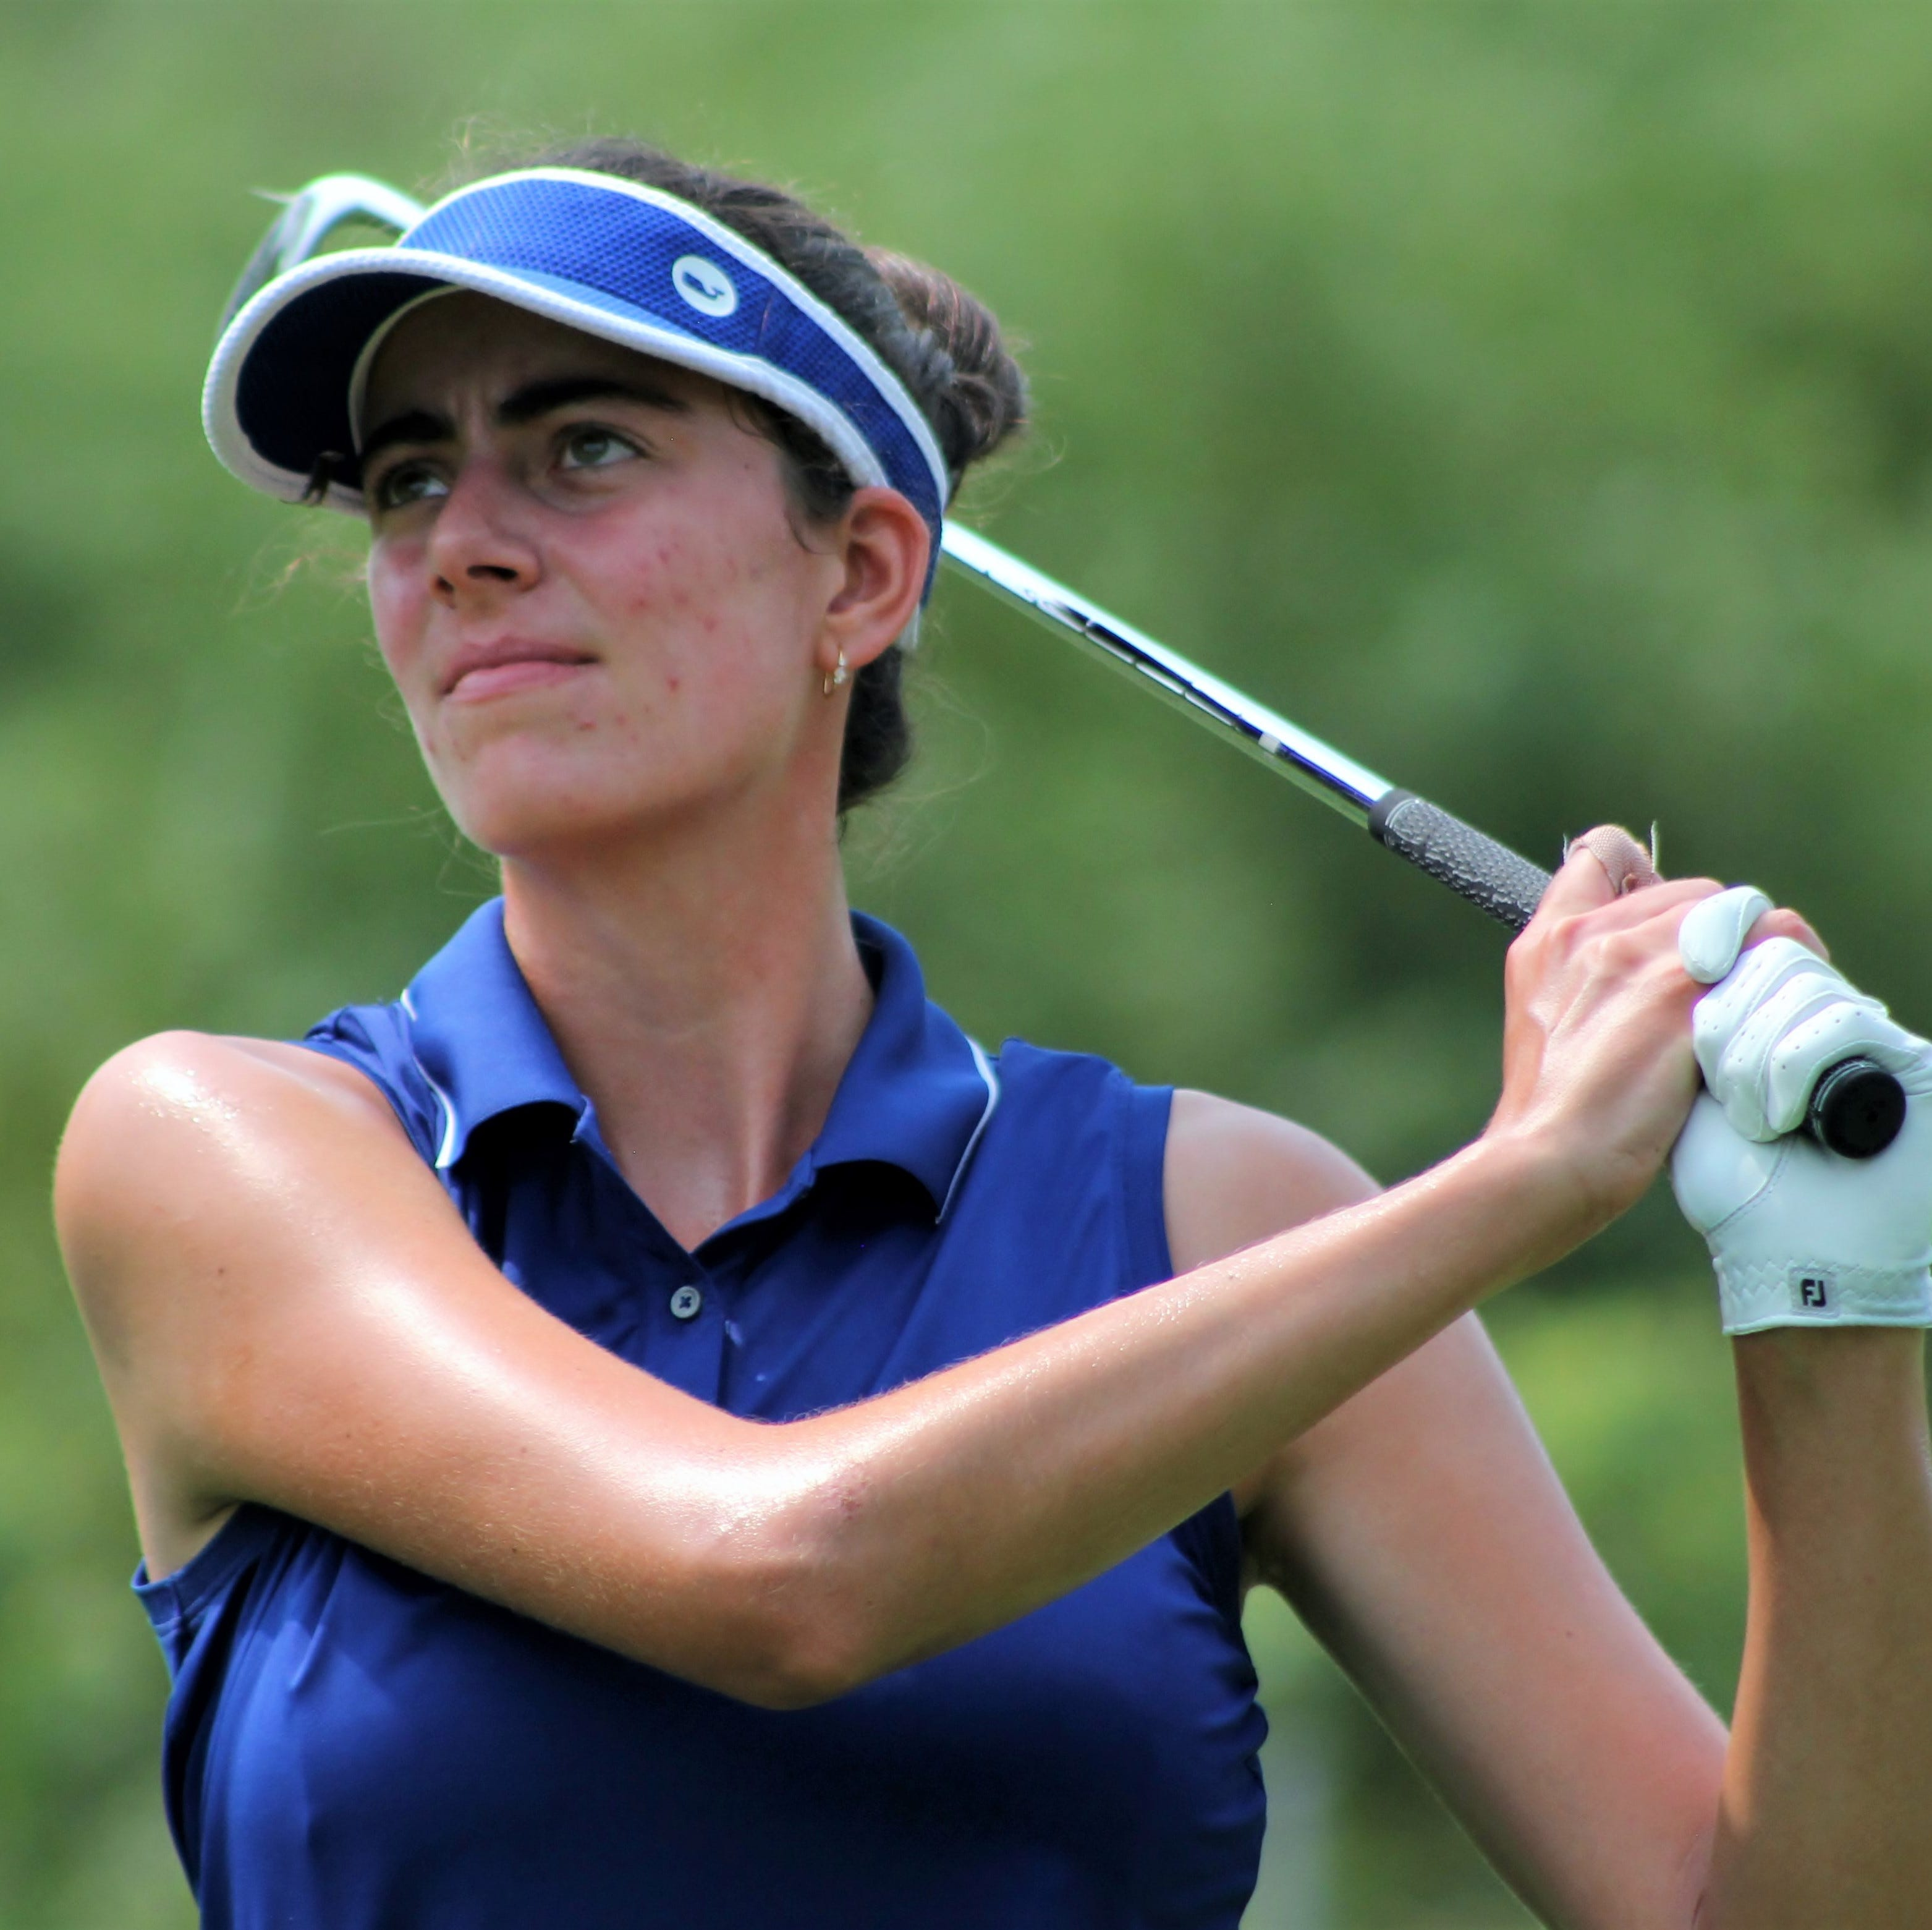 South Lyon's Priscilla Harding reaches quarters in Michigan Women's Am